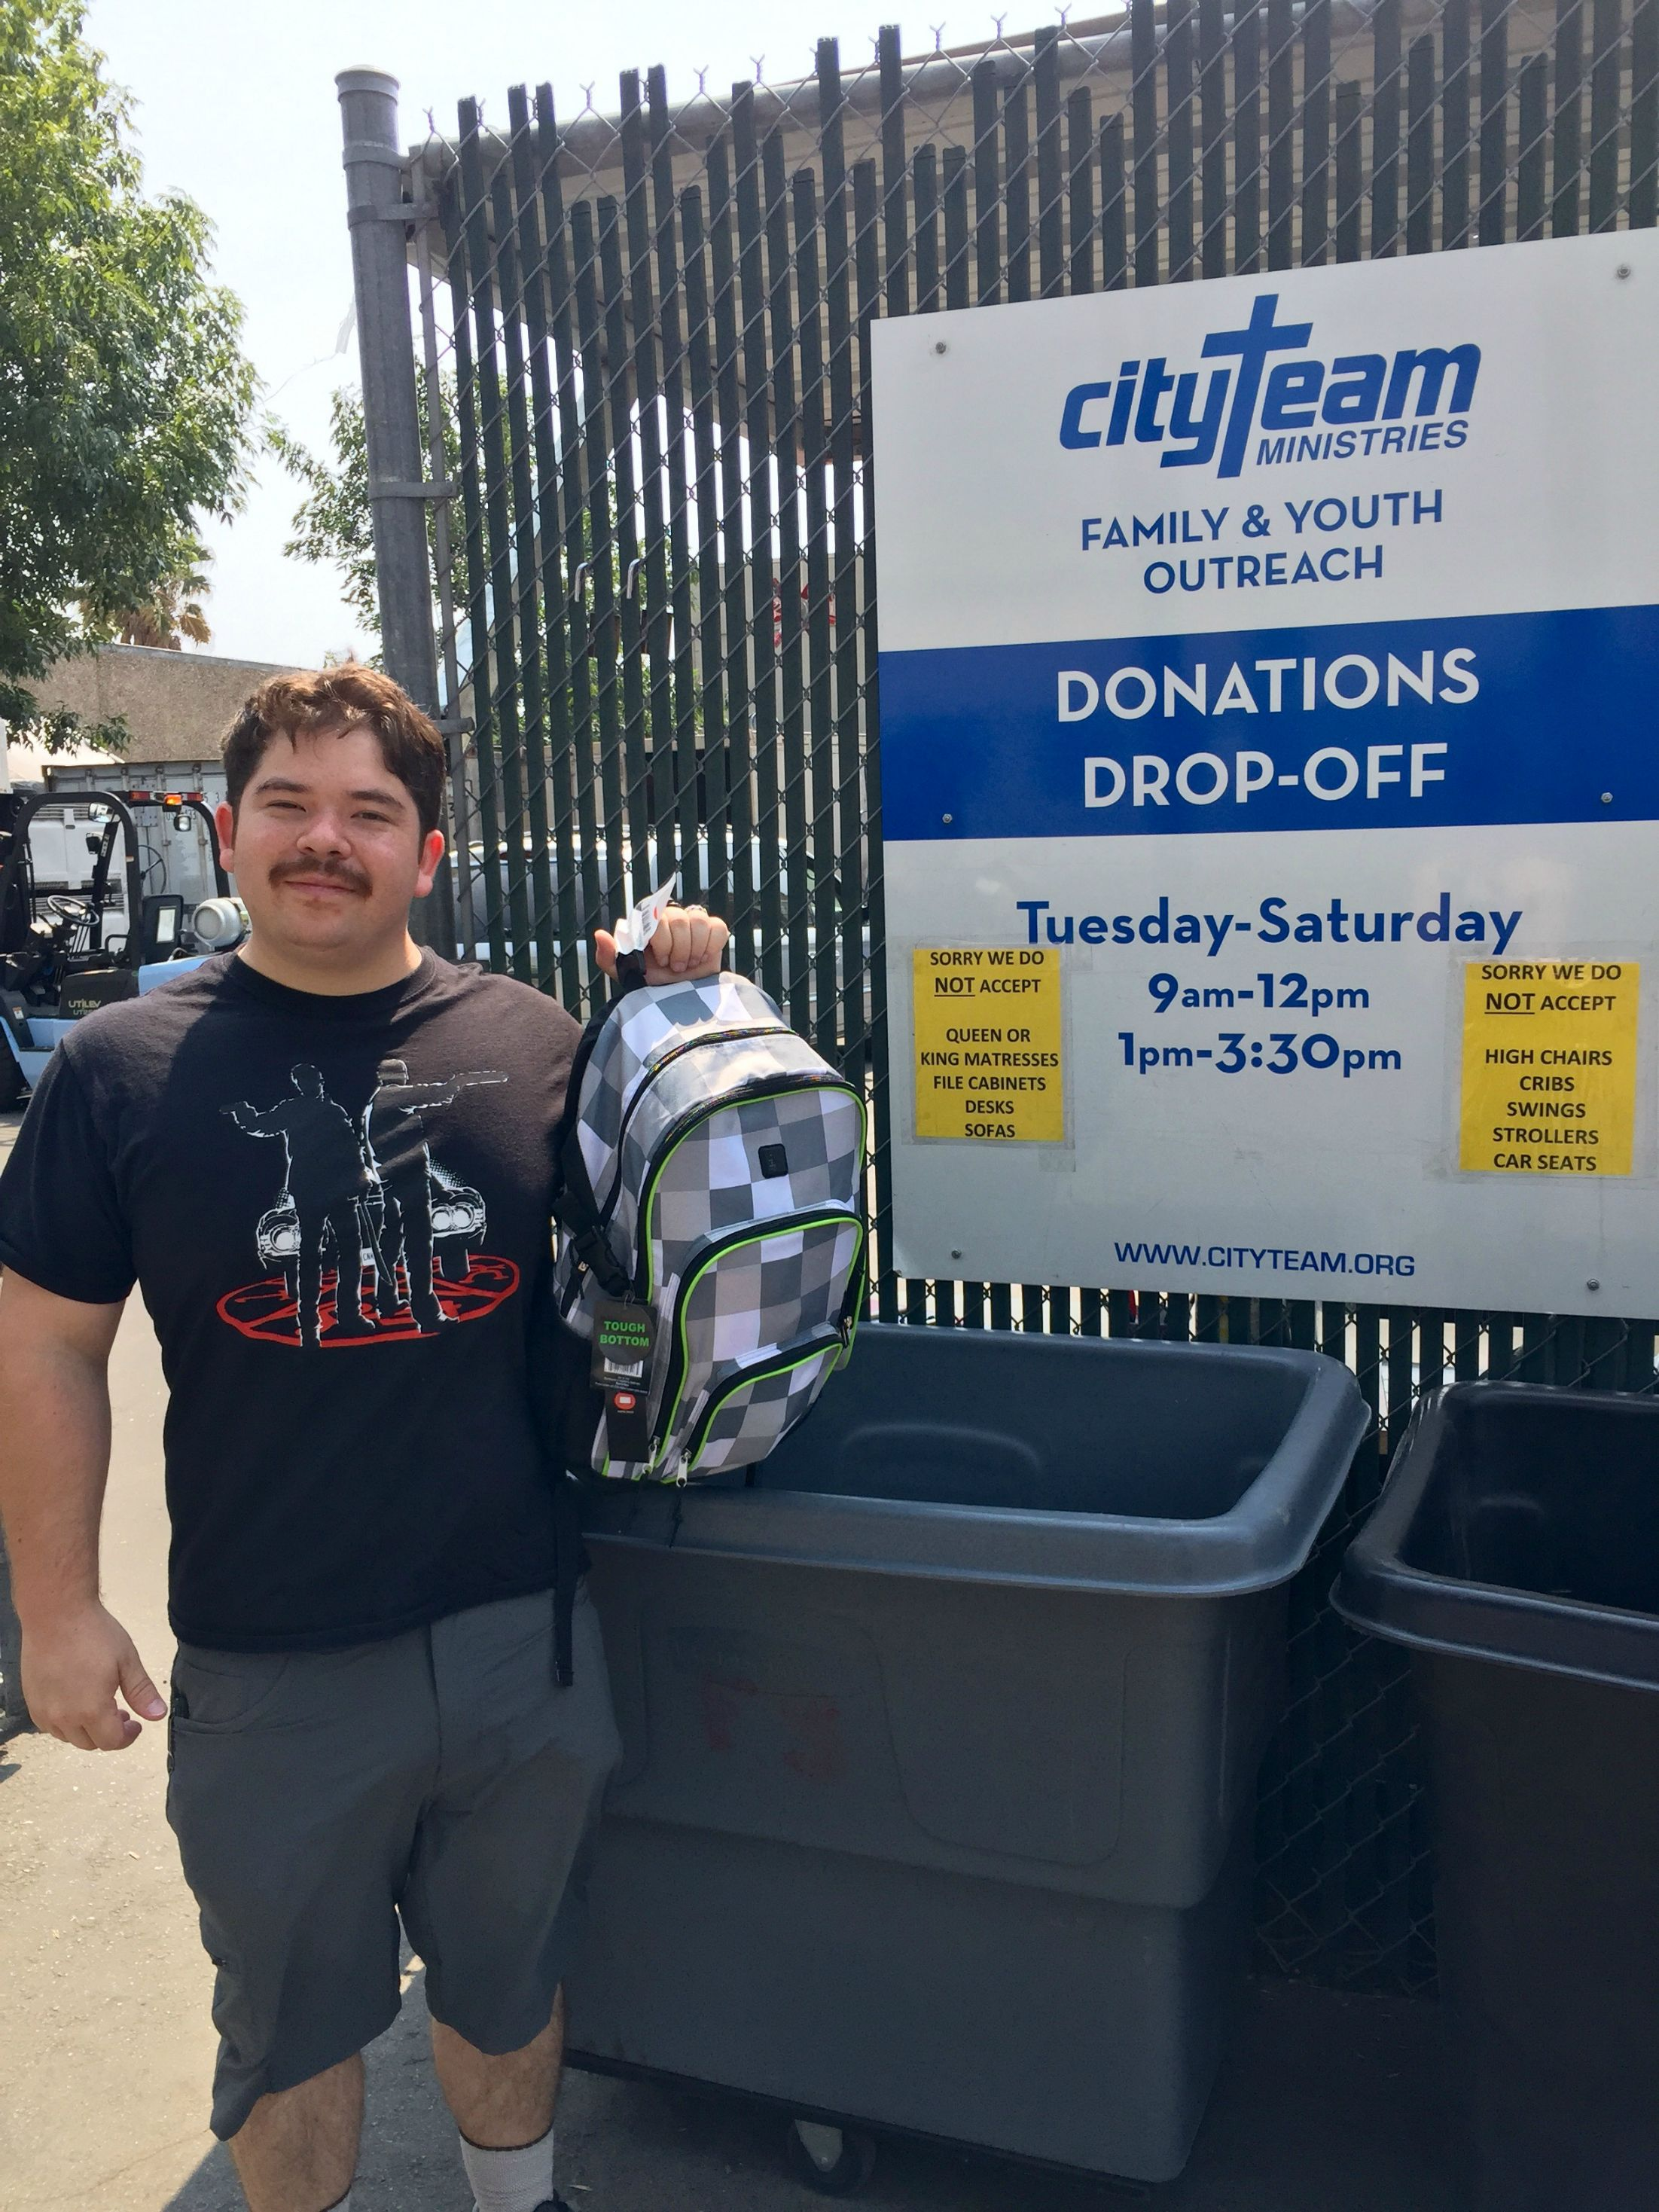 Item 208 - Backpack Donation